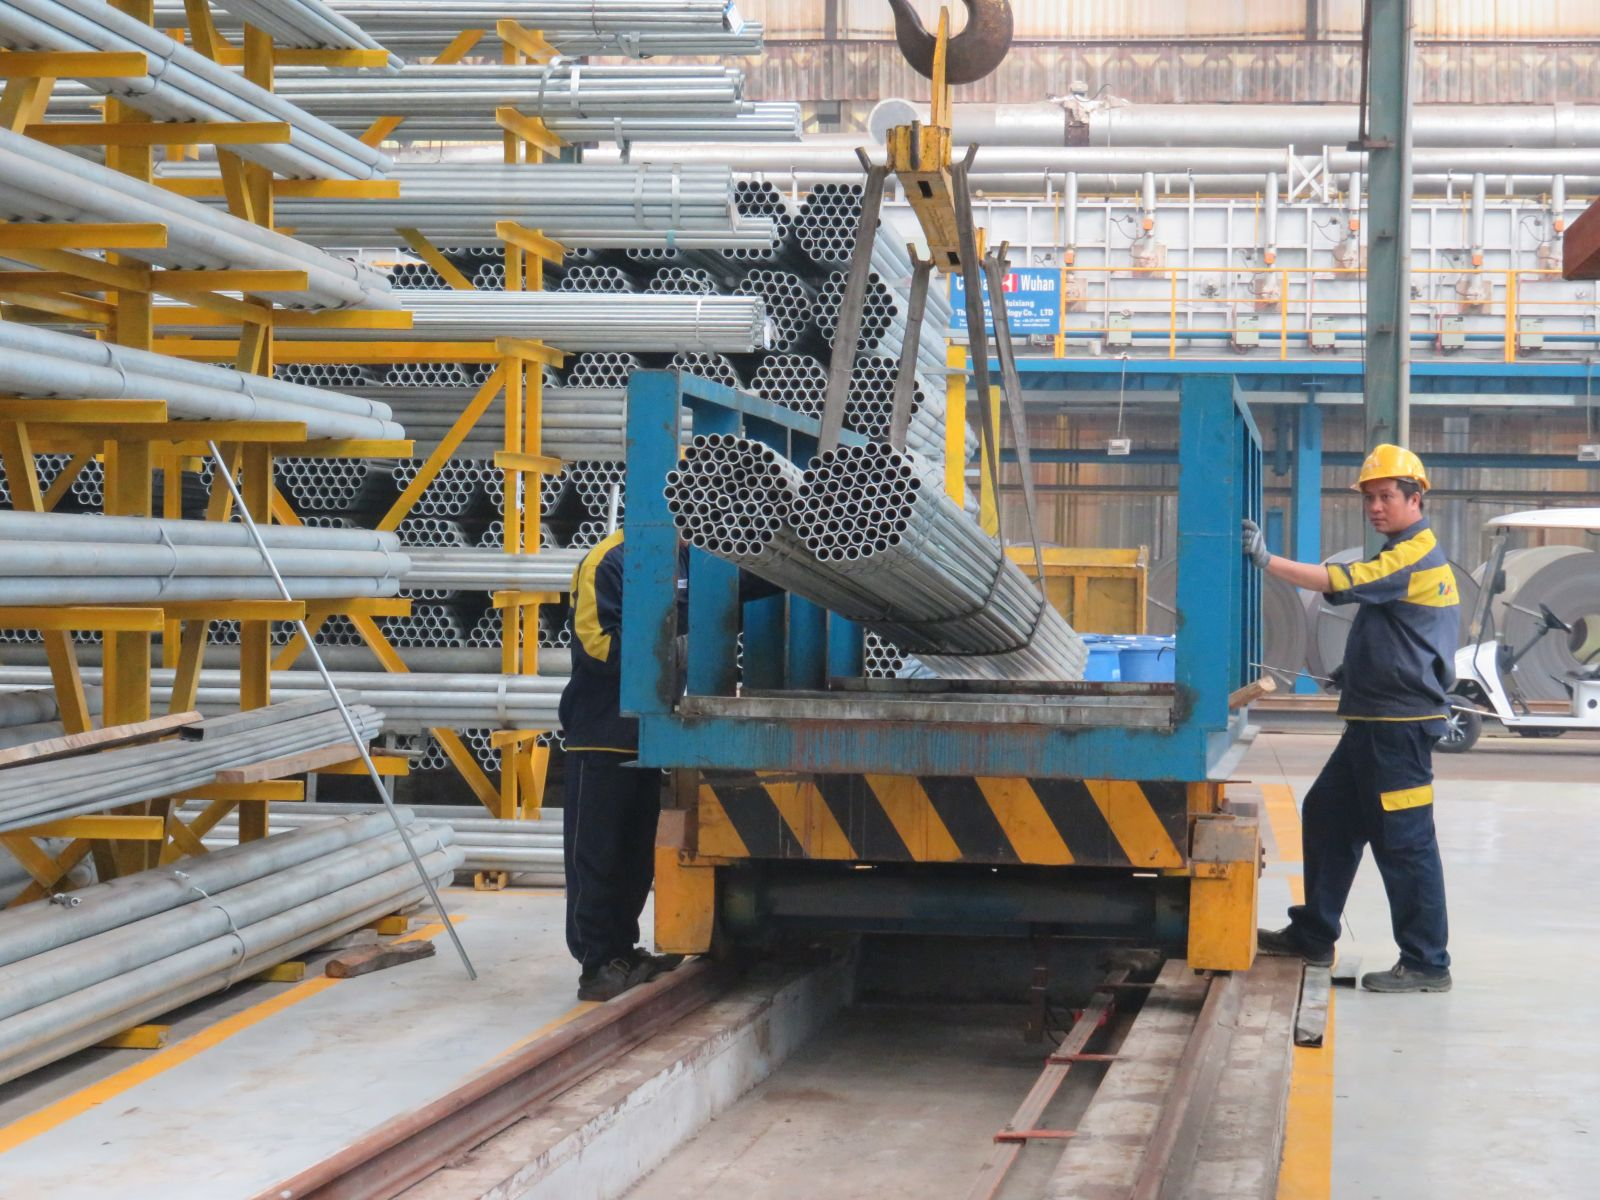 Iron - steel is one of the manufactured products increased in October